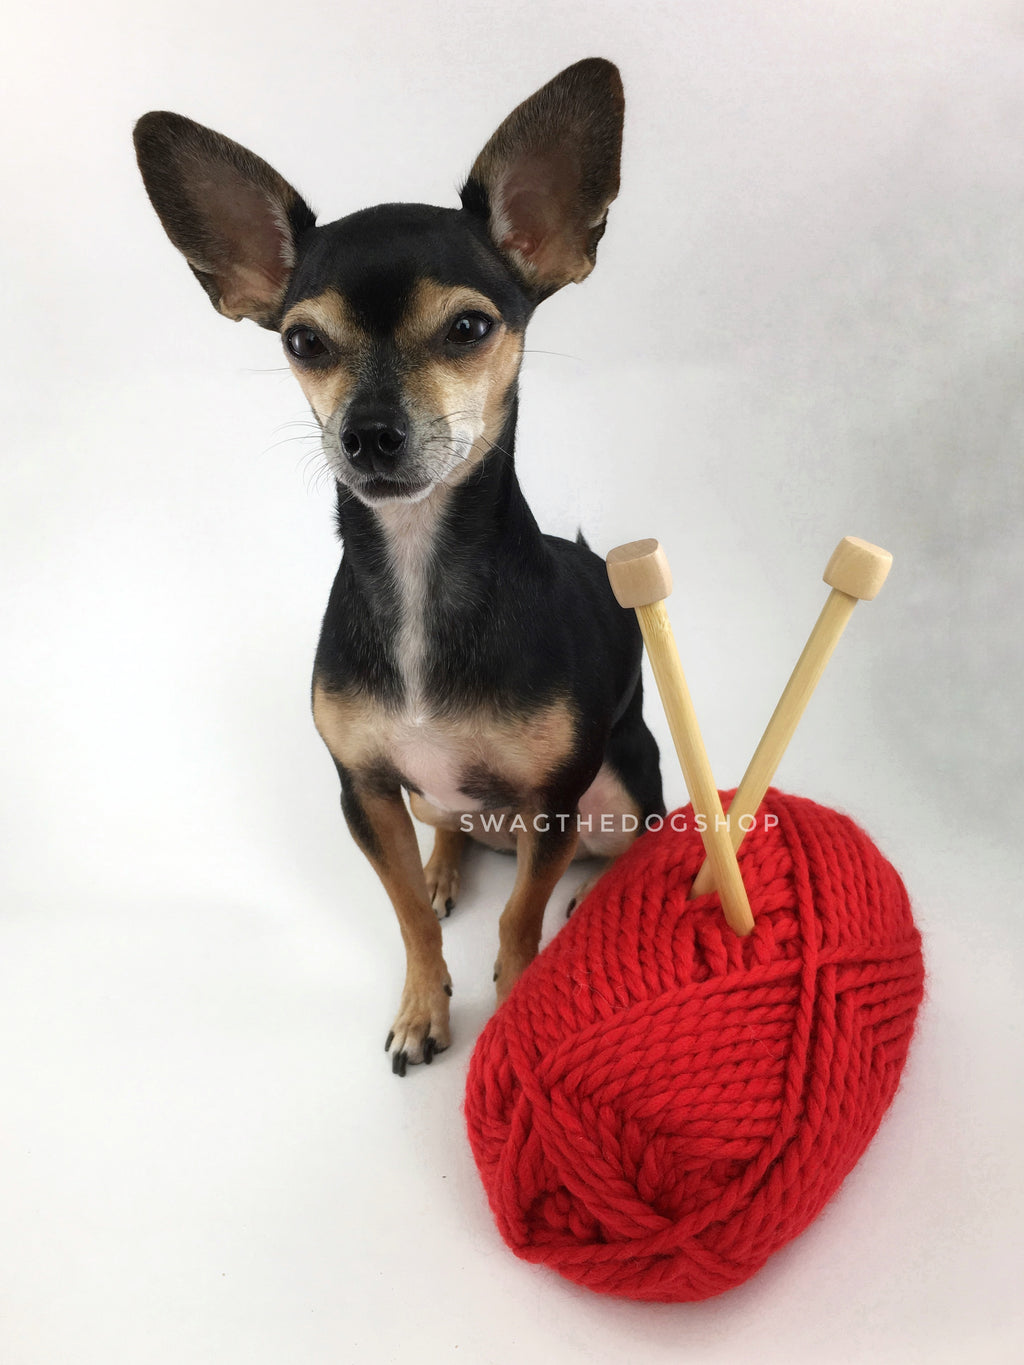 Christmas Red Swagsnood - Yarn with Cute Chihuahua Dog. Bright Red Color Dog Snood with Accent Button